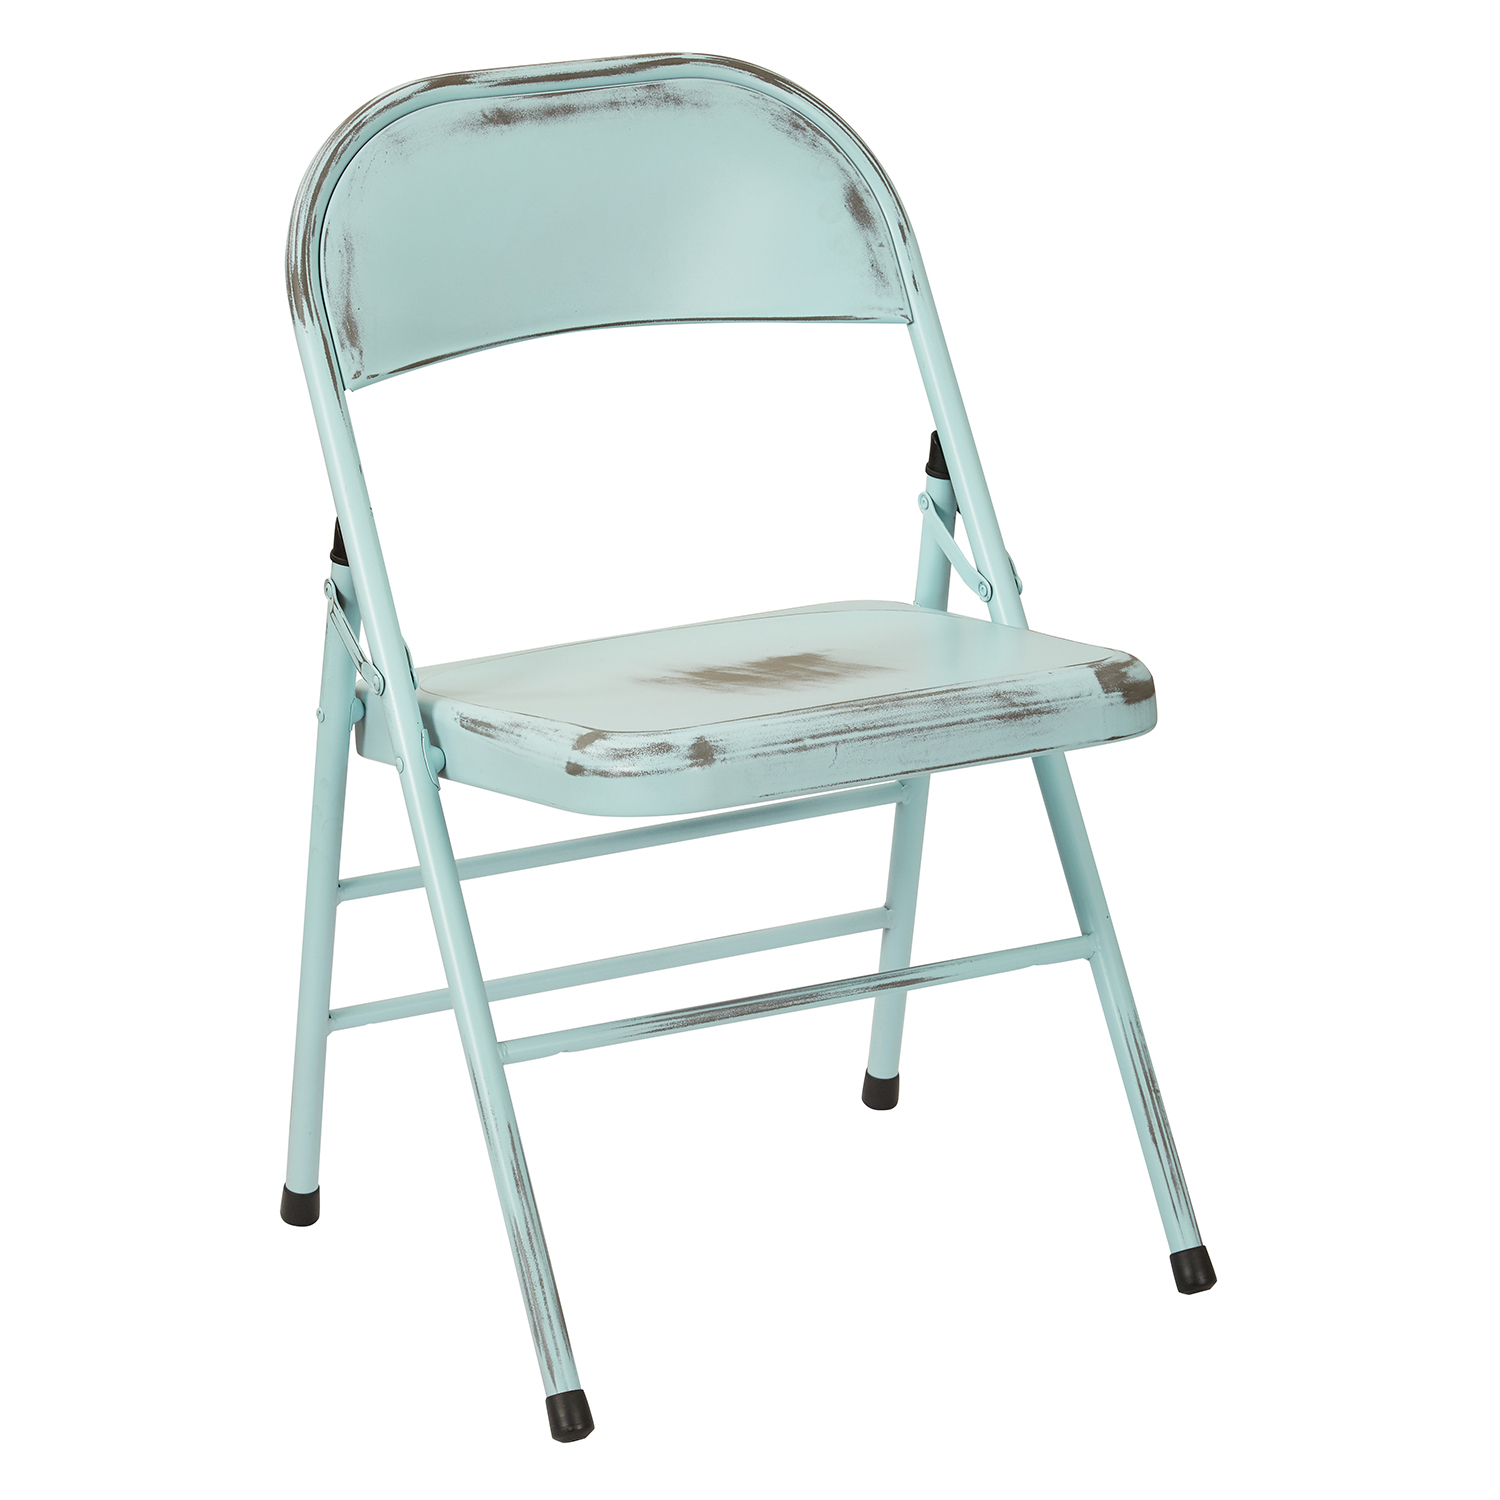 Bristow Blue Steel Folding Chairs Set of 2